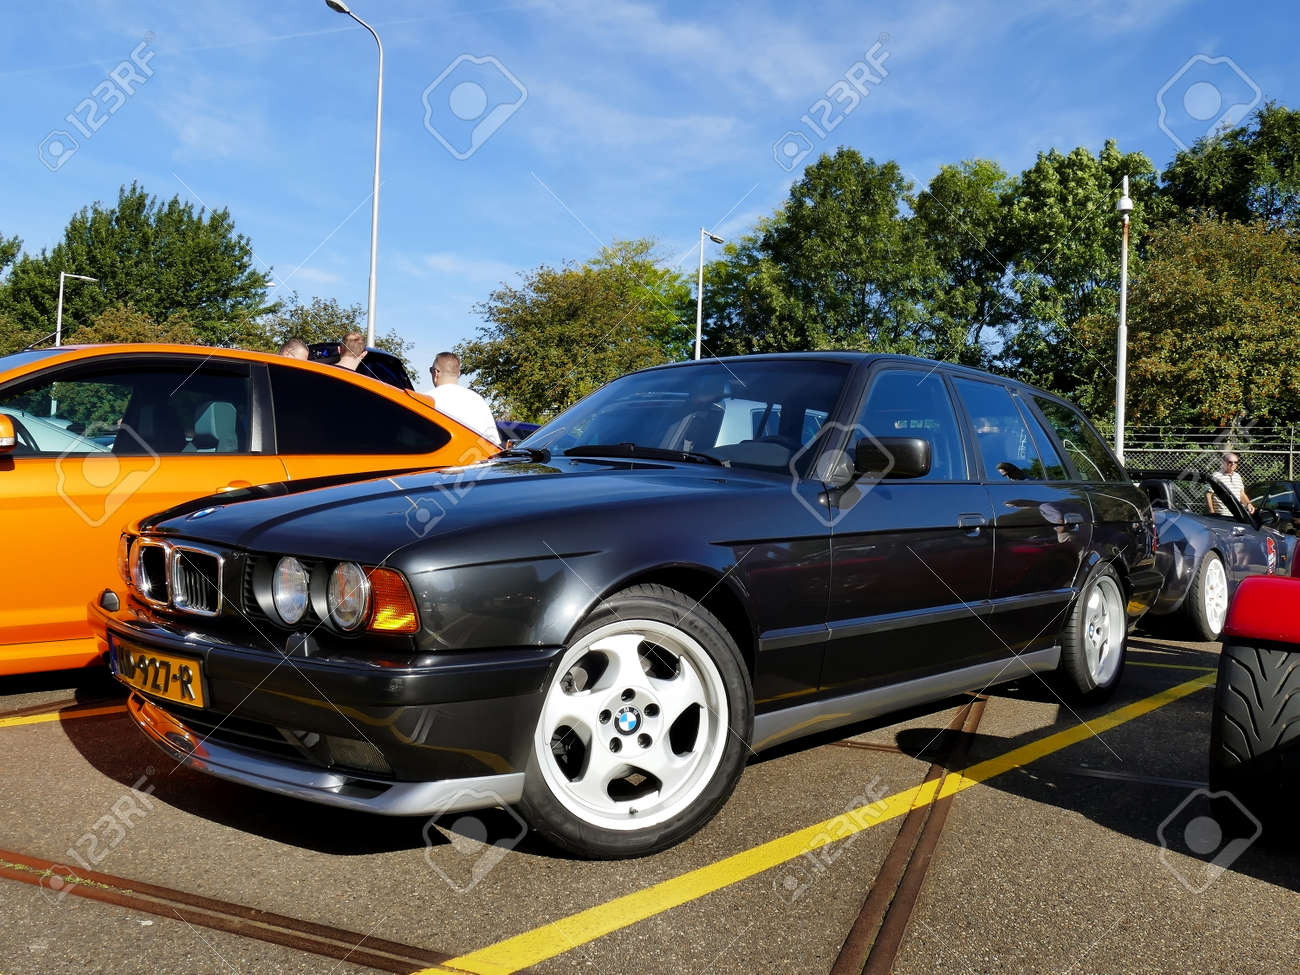 Amsterdam The Netherlands September 10 2016 Black Bmw M5 Stock Photo Picture And Royalty Free Image Image 62870427